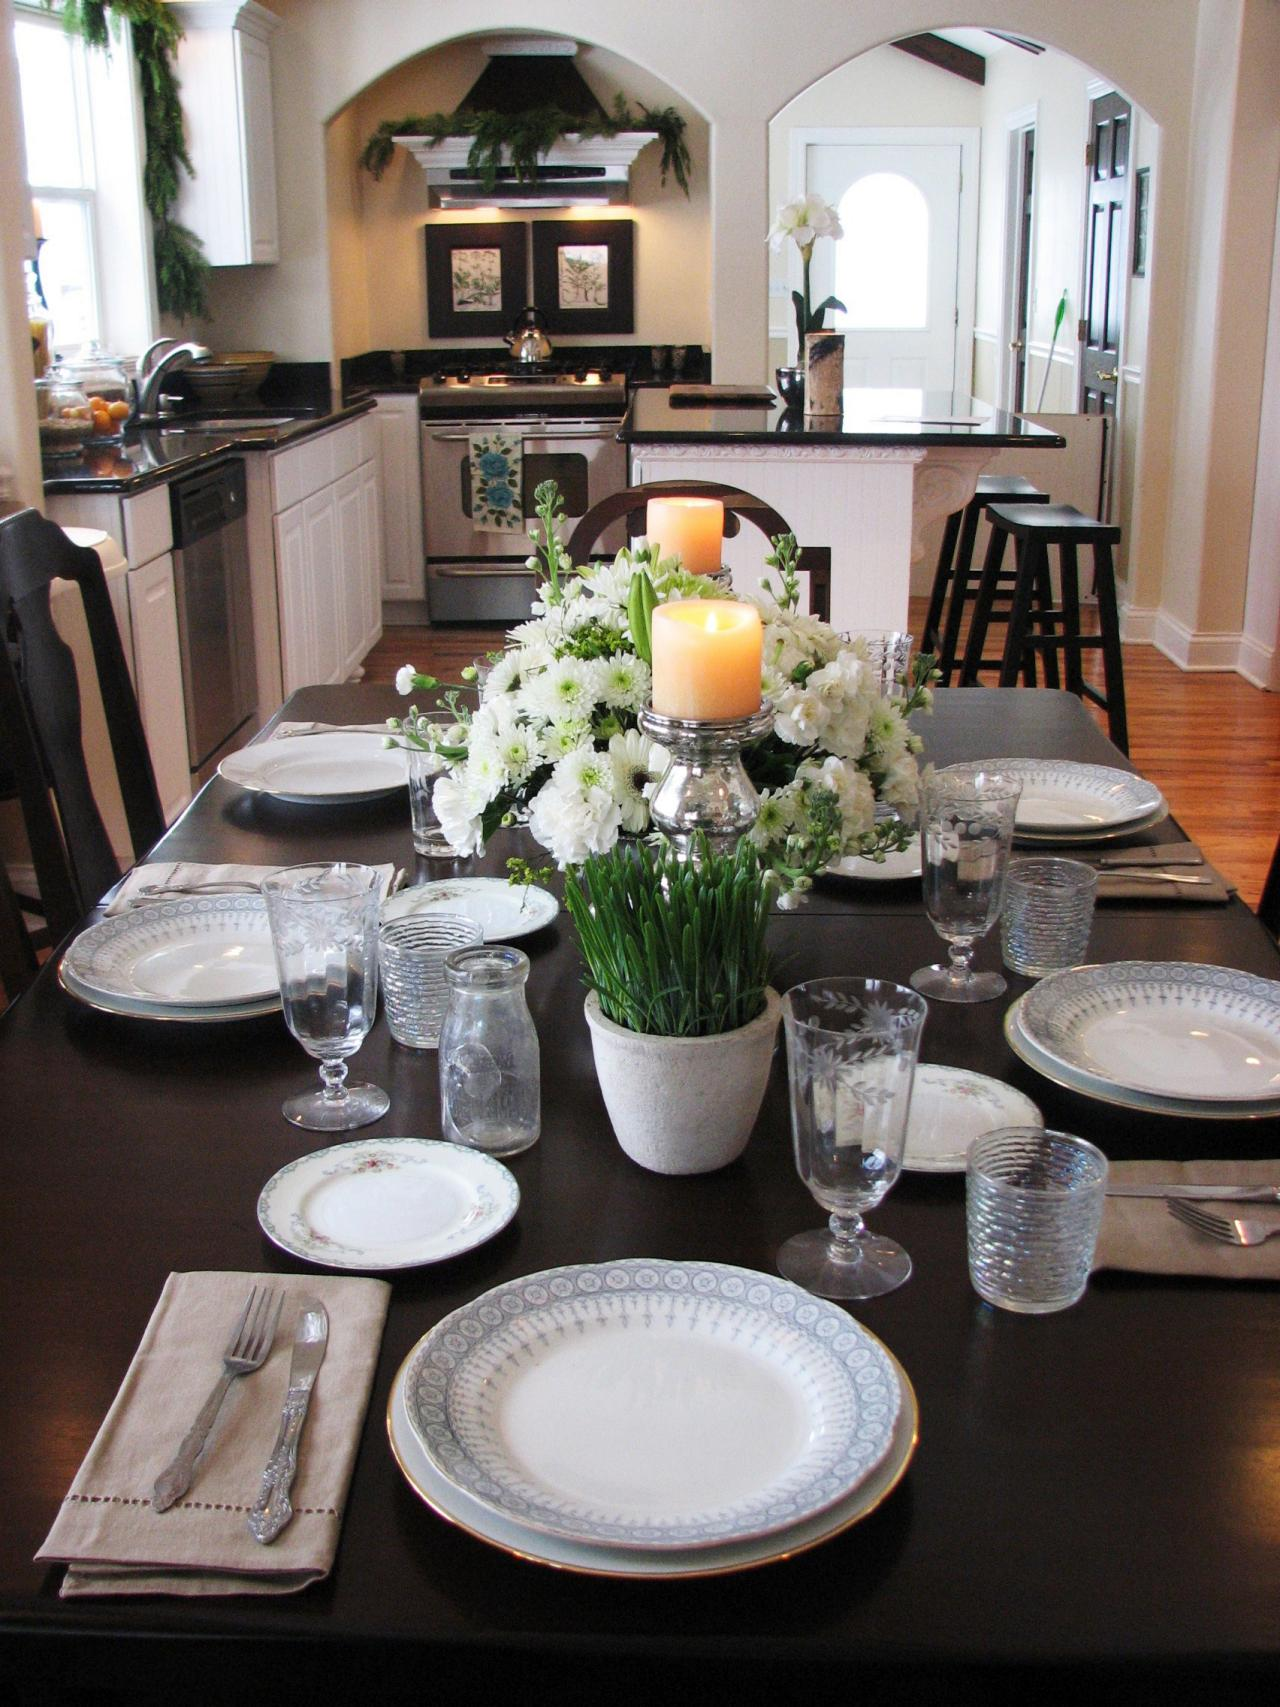 Restaurant table setting ideas - Kitchen Table Centerpiece Design Ideas